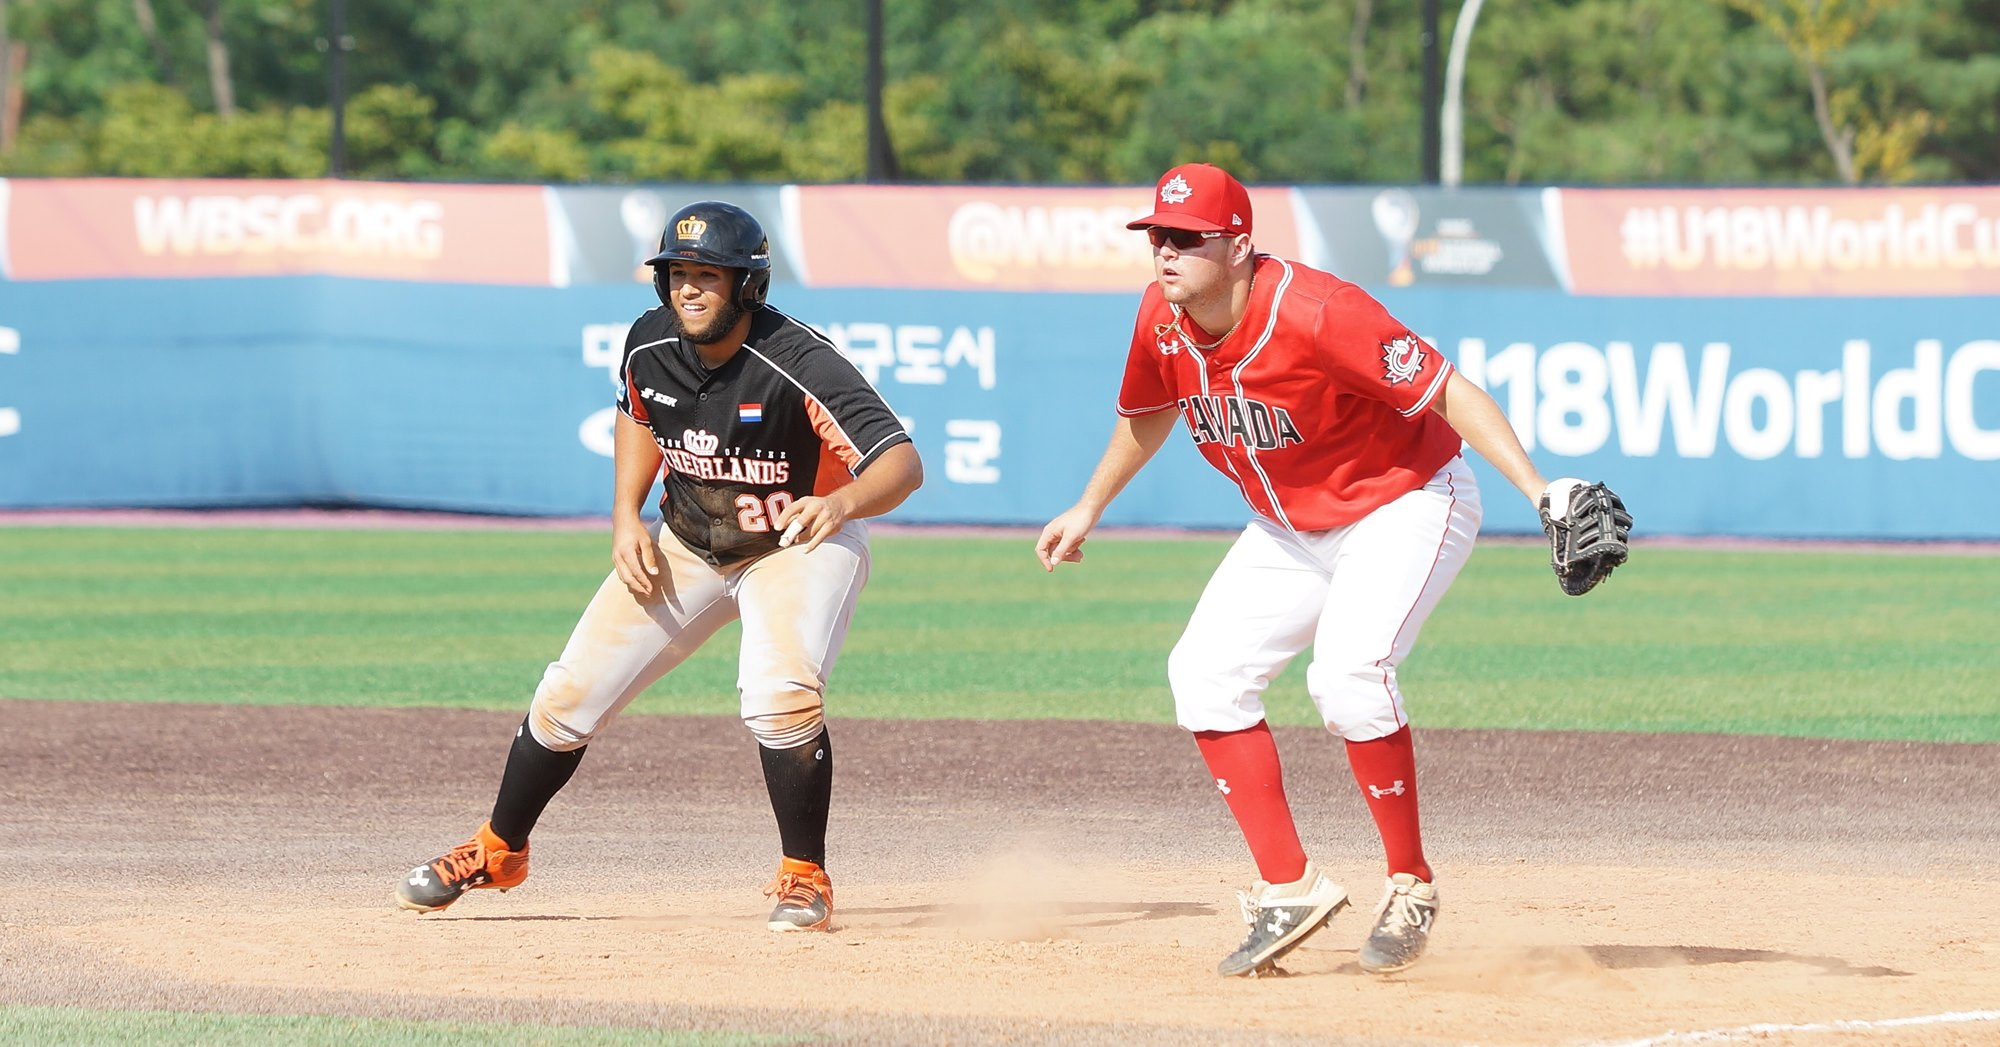 Canada's Noah Hull defends first base against Shane Quant of The Netherlands